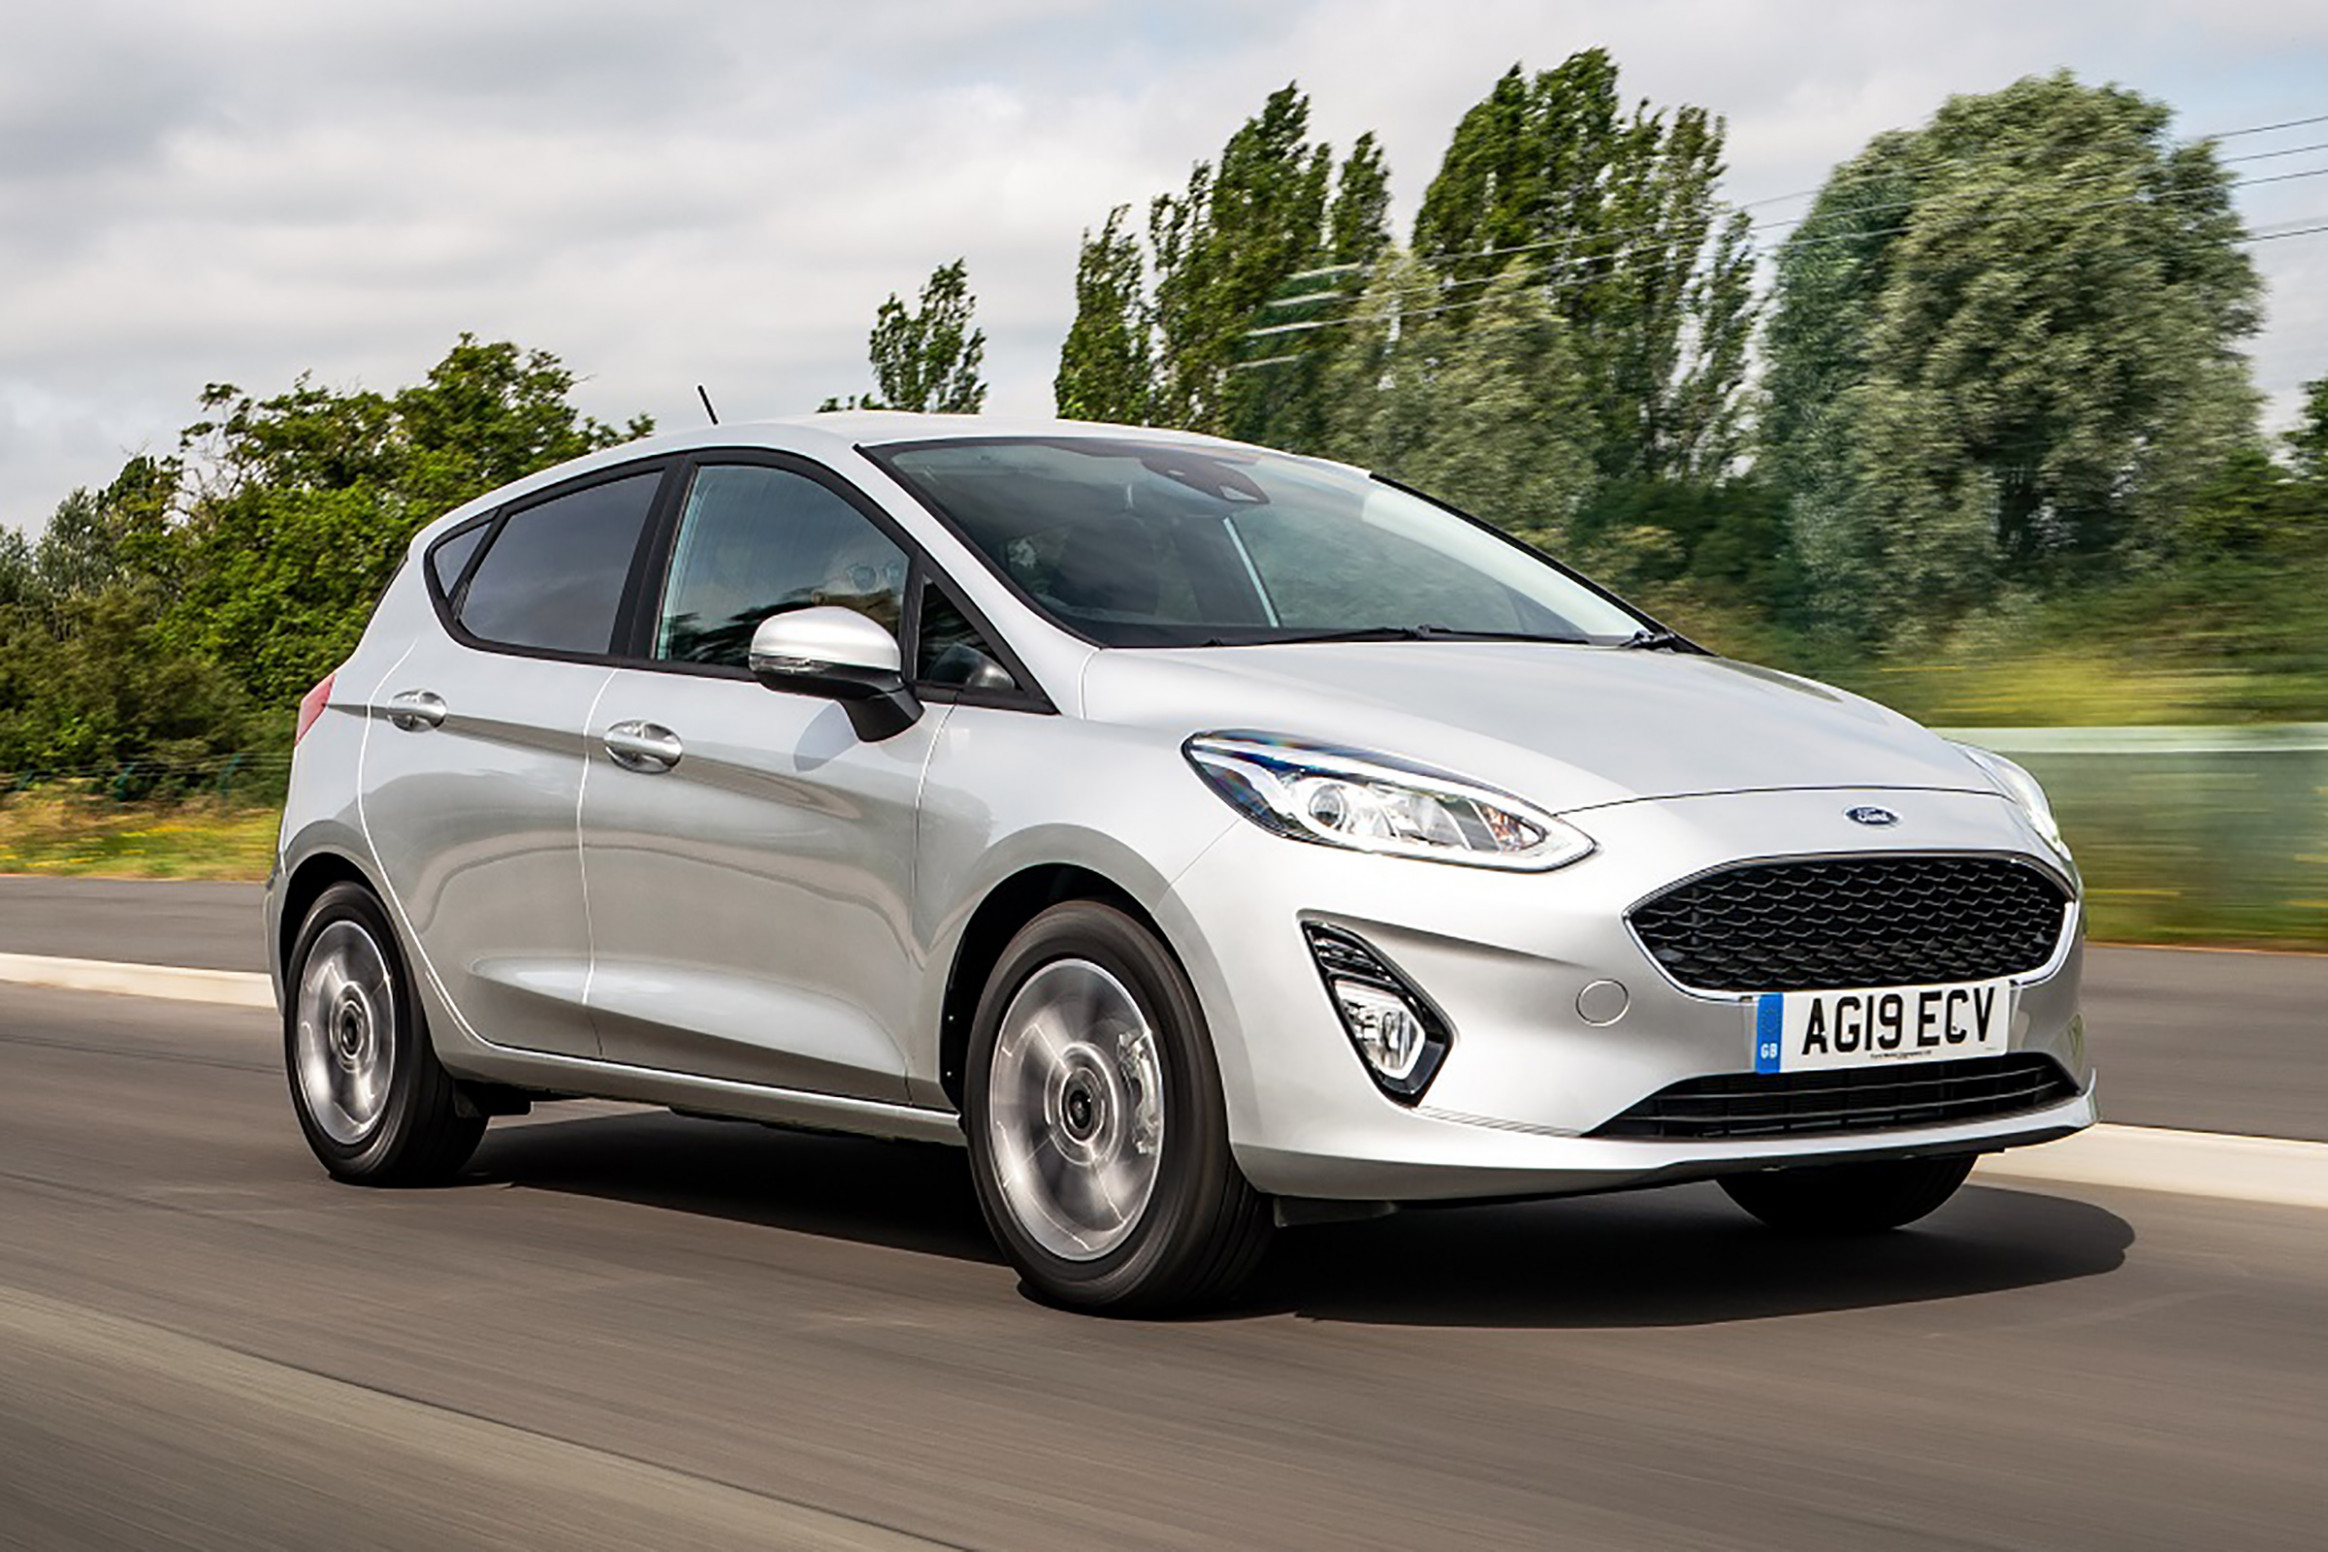 New Ford Fiesta Trend 8 review | Auto Express